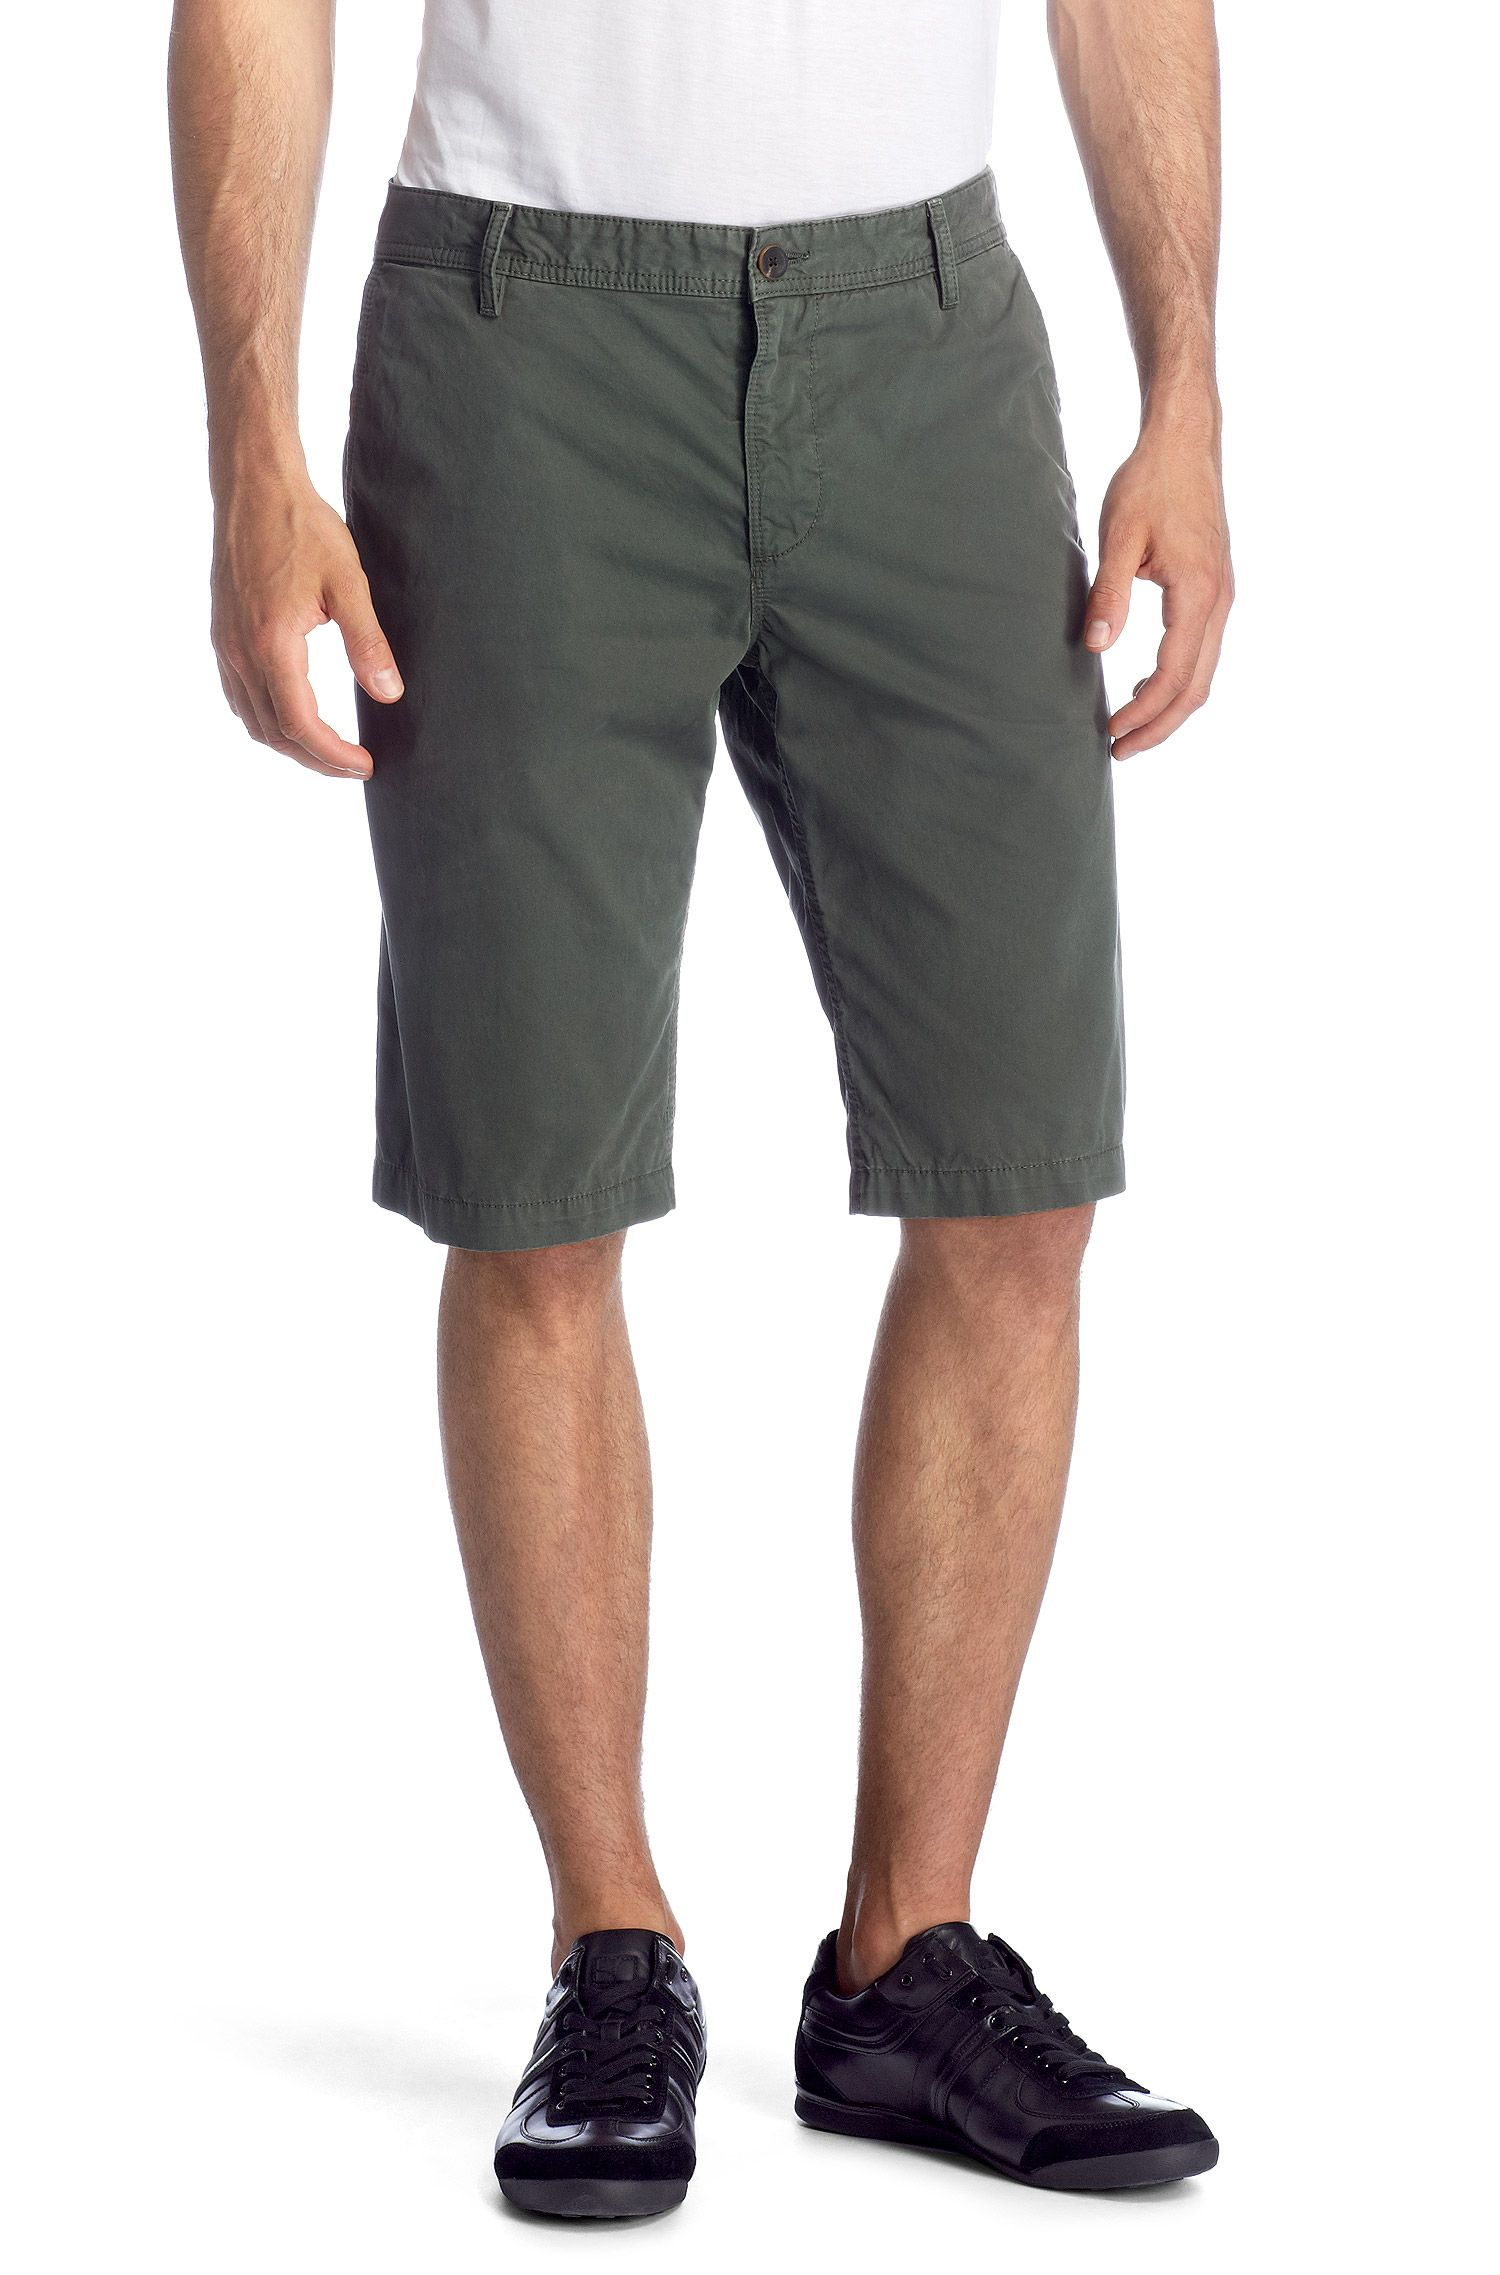 Bermuda détente Regular Fit, Schino-Shorts-D